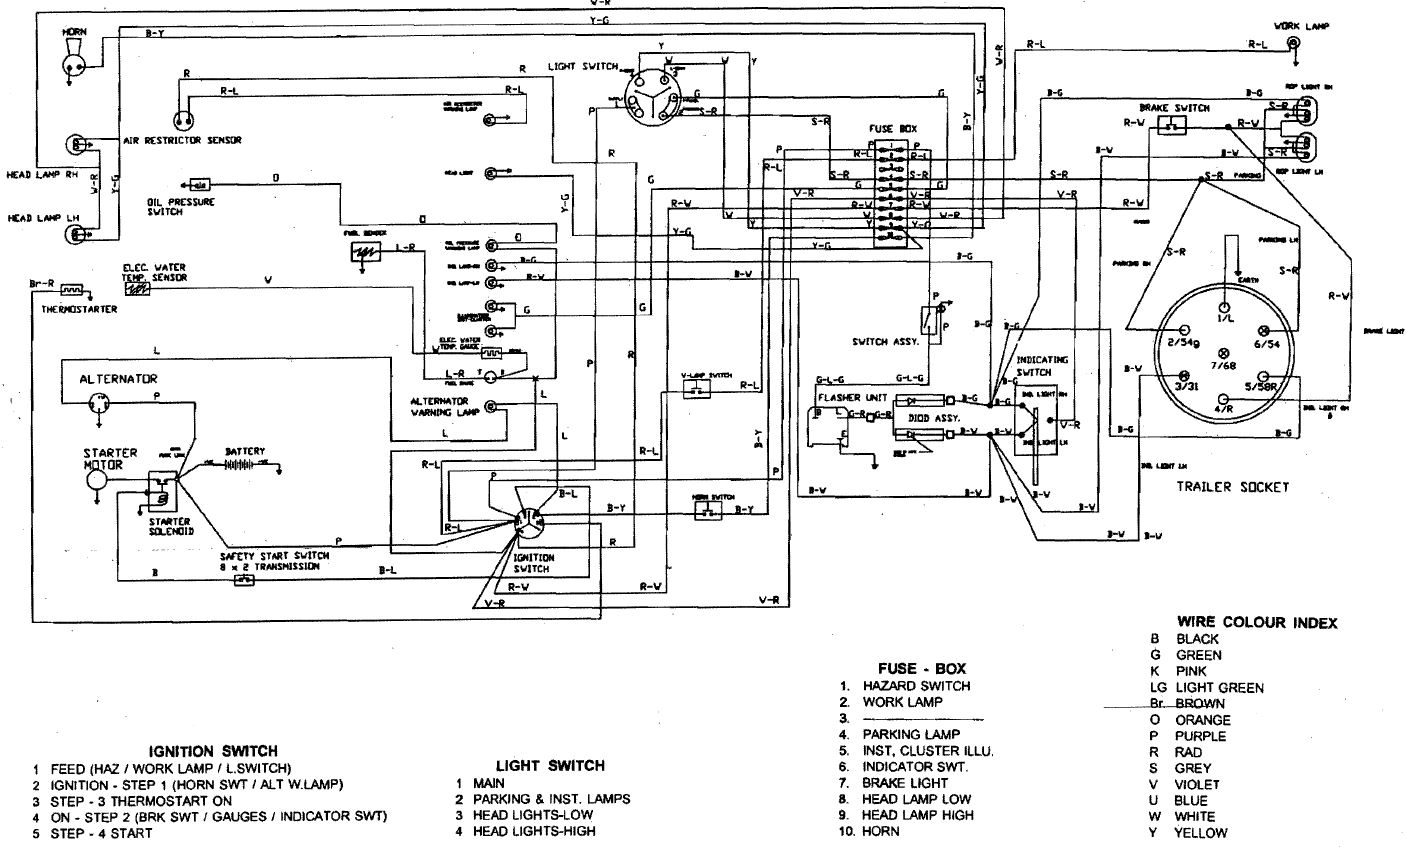 20158463319_b82d524c3d_o ignition switch wiring diagram john deere 425 wiring diagram at crackthecode.co